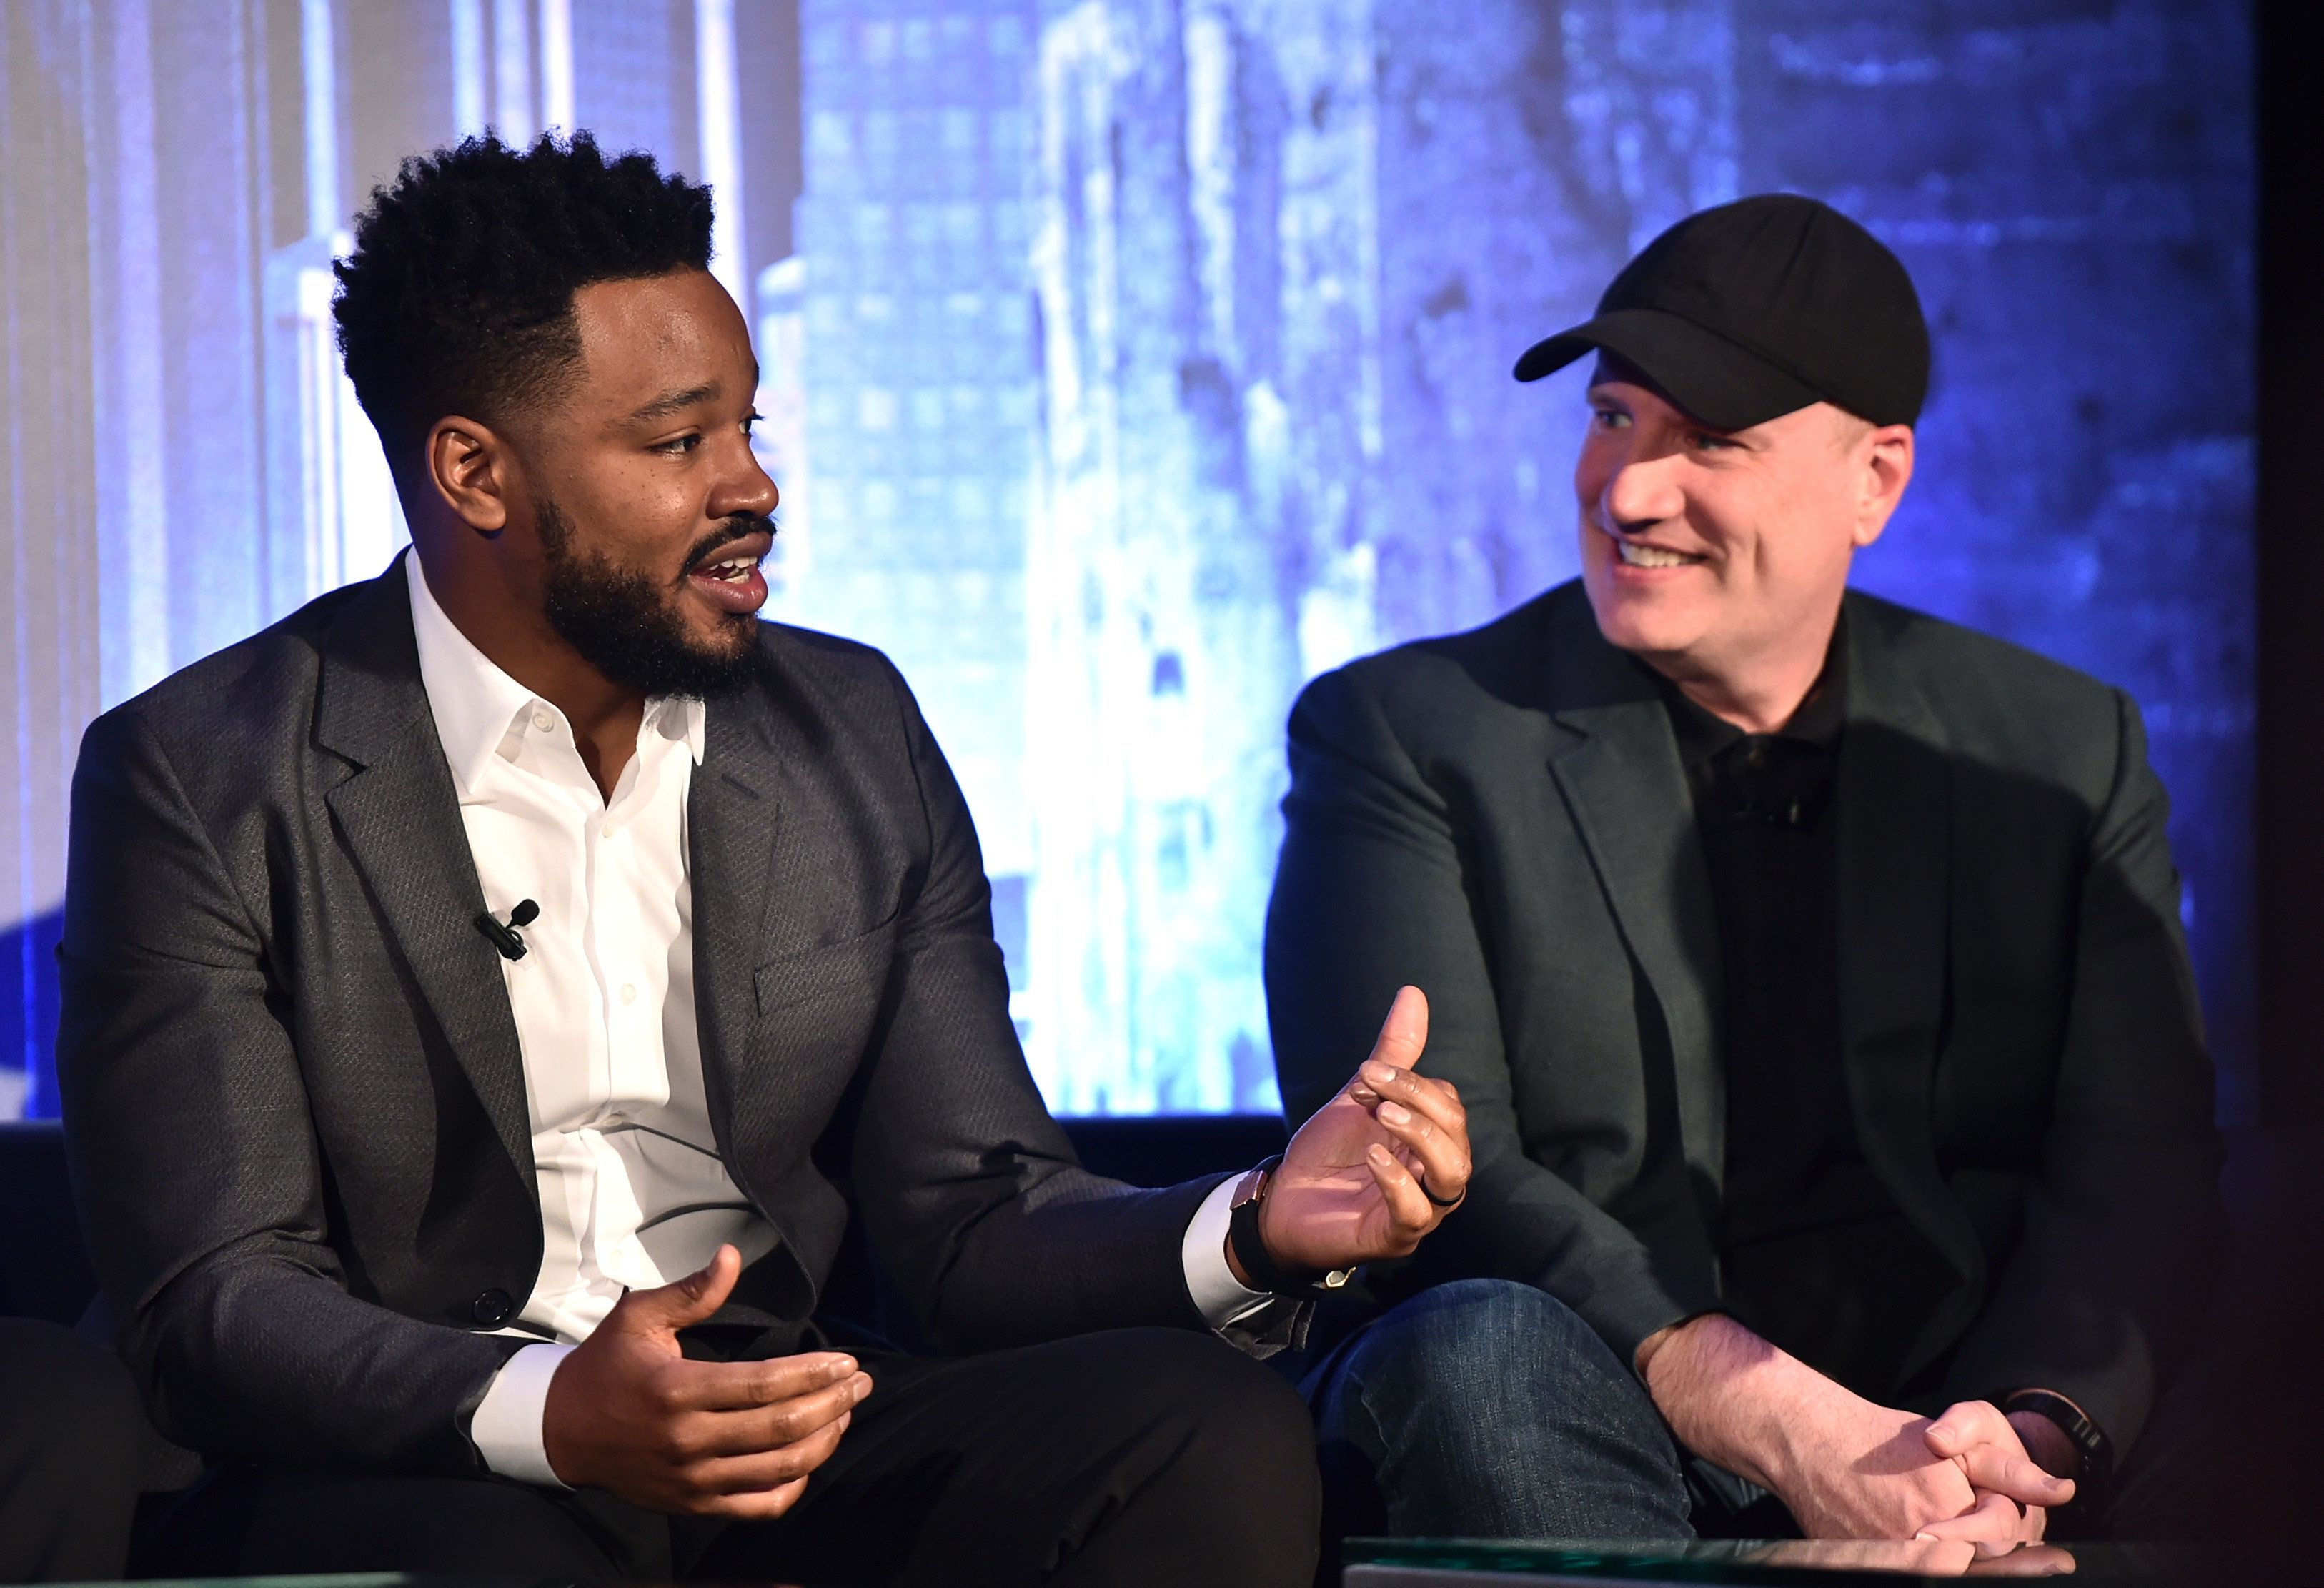 BEVERLY HILLS, CA - JANUARY 30: Director Ryan Coogler (L) and President of Marvel Studios Kevin Feige attend the Marvel Studios' BLACK PANTHER Global Junket Press Conference on January 30, 2018 at Montage Beverly Hills in Beverly Hills, California.  (Photo by Alberto E. Rodriguez/Getty Images for Disney)